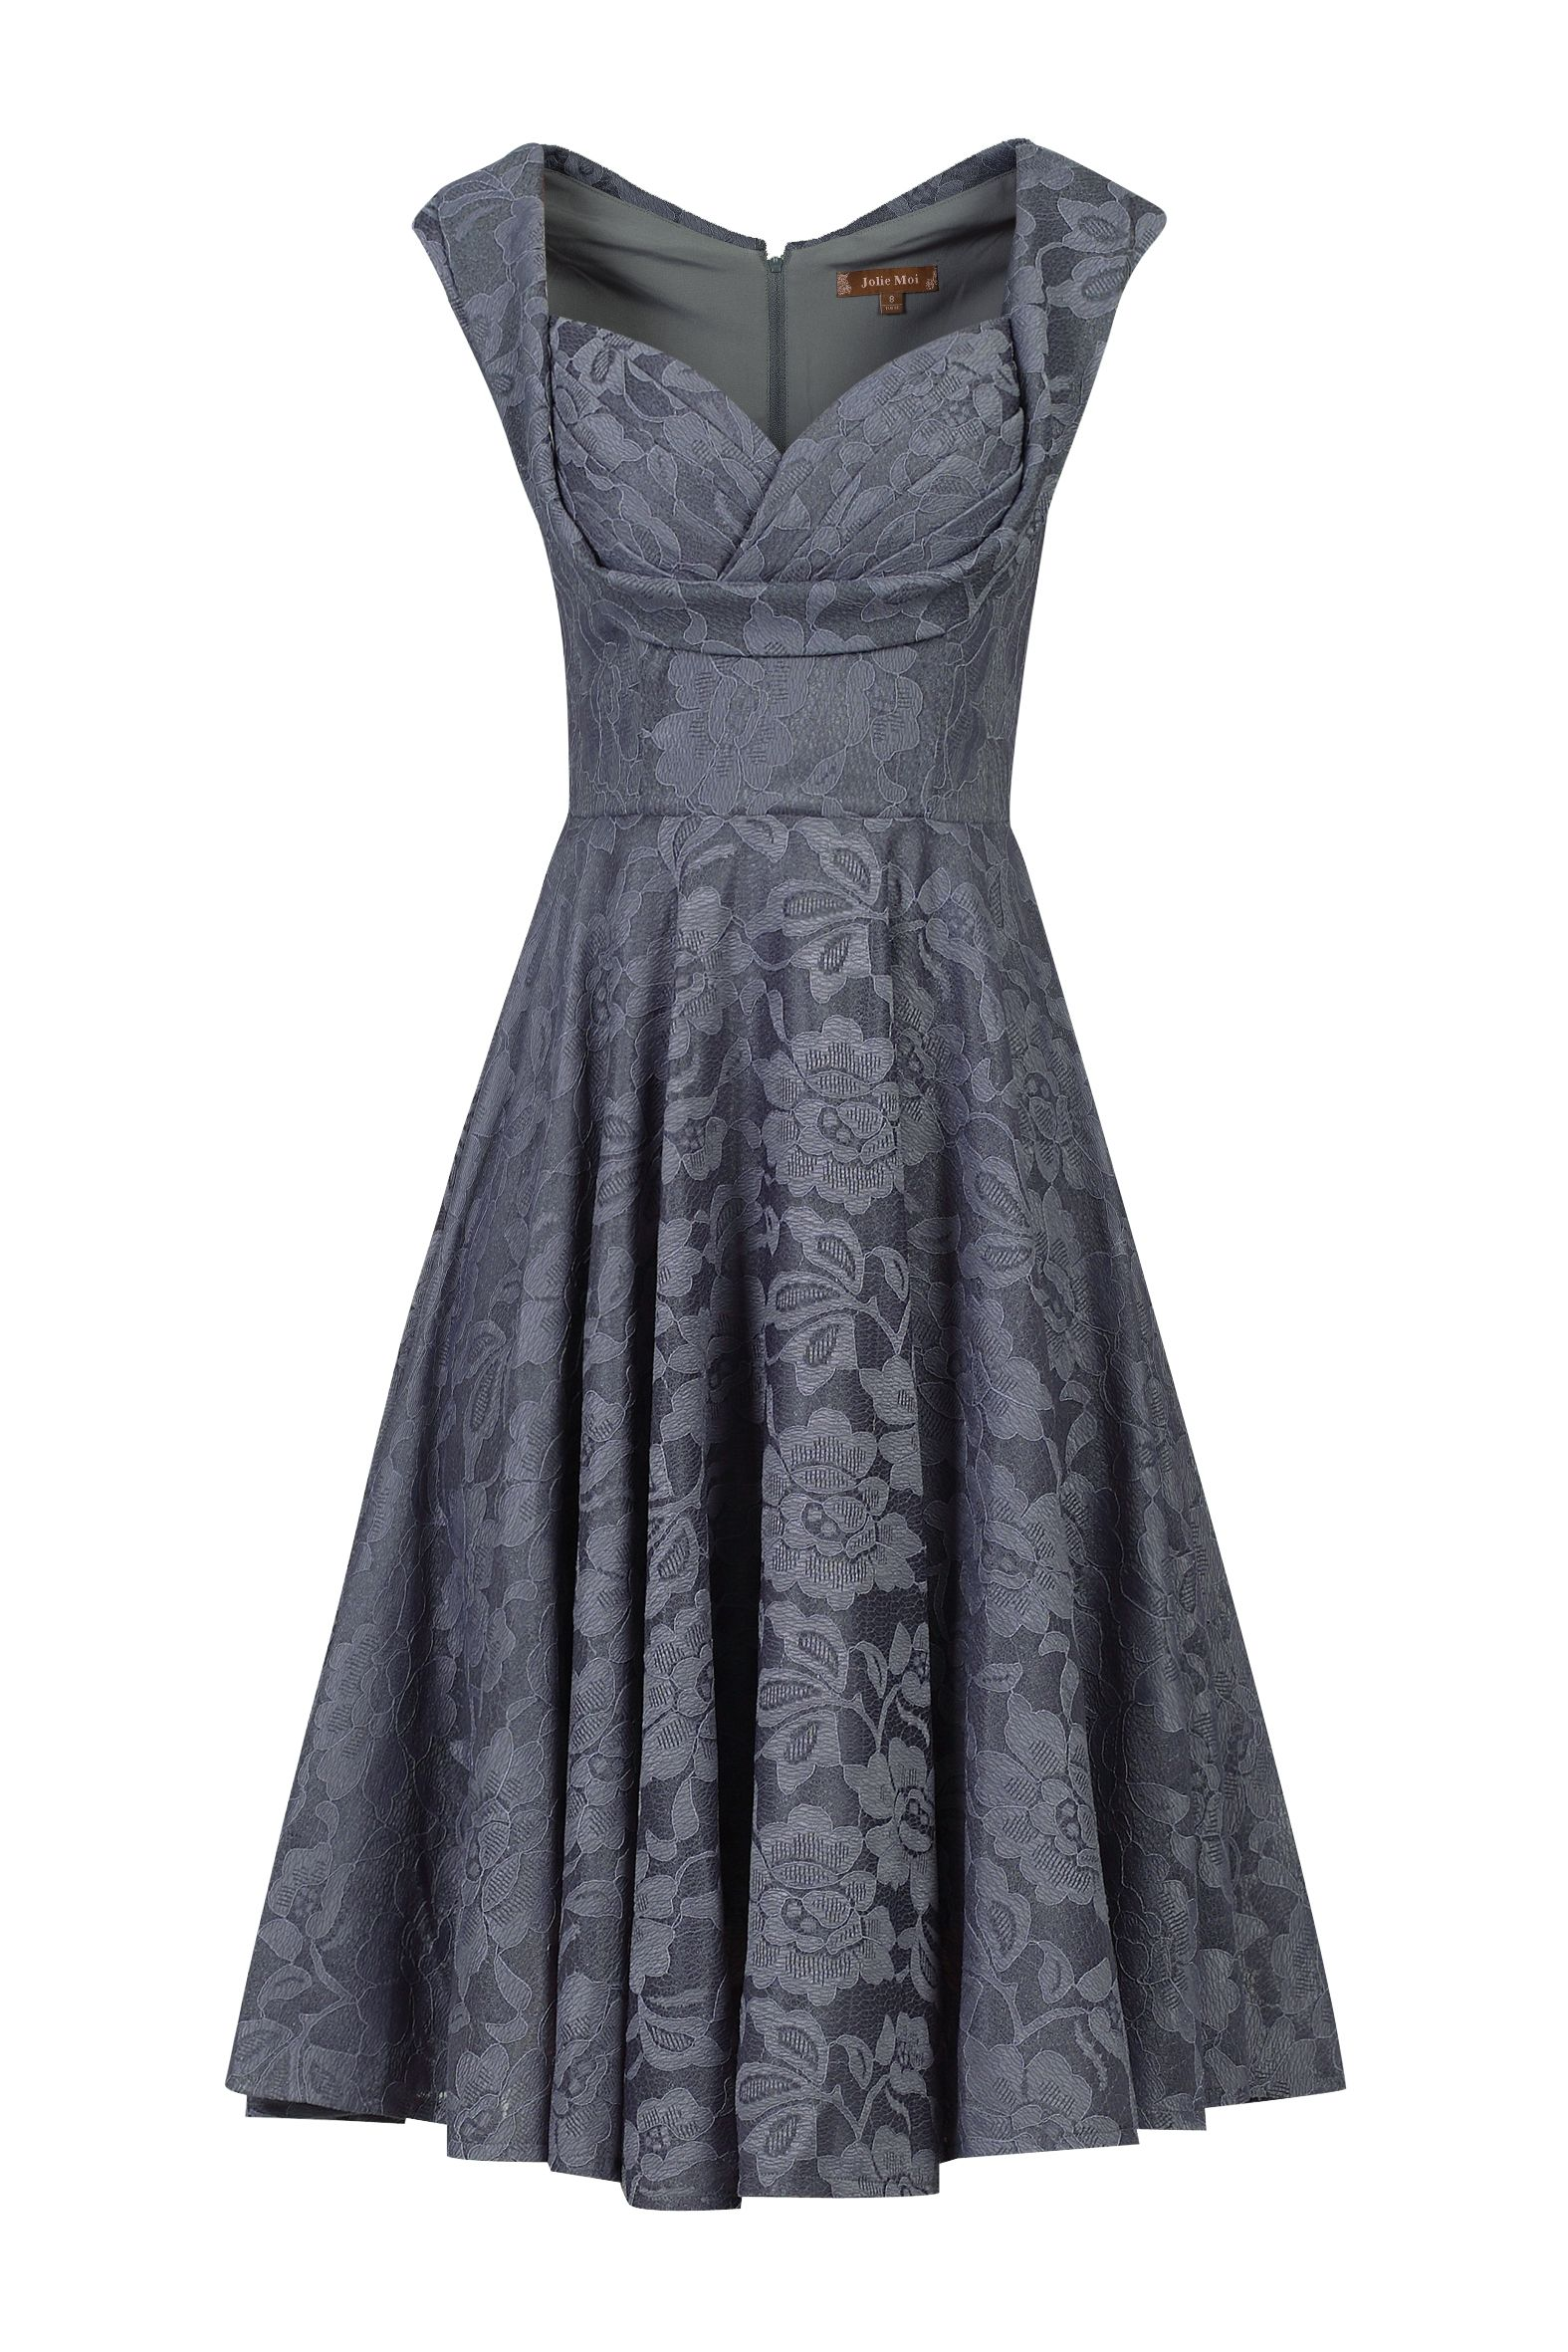 Jolie Moi Ruched Crossover Bust Prom Dress, Grey